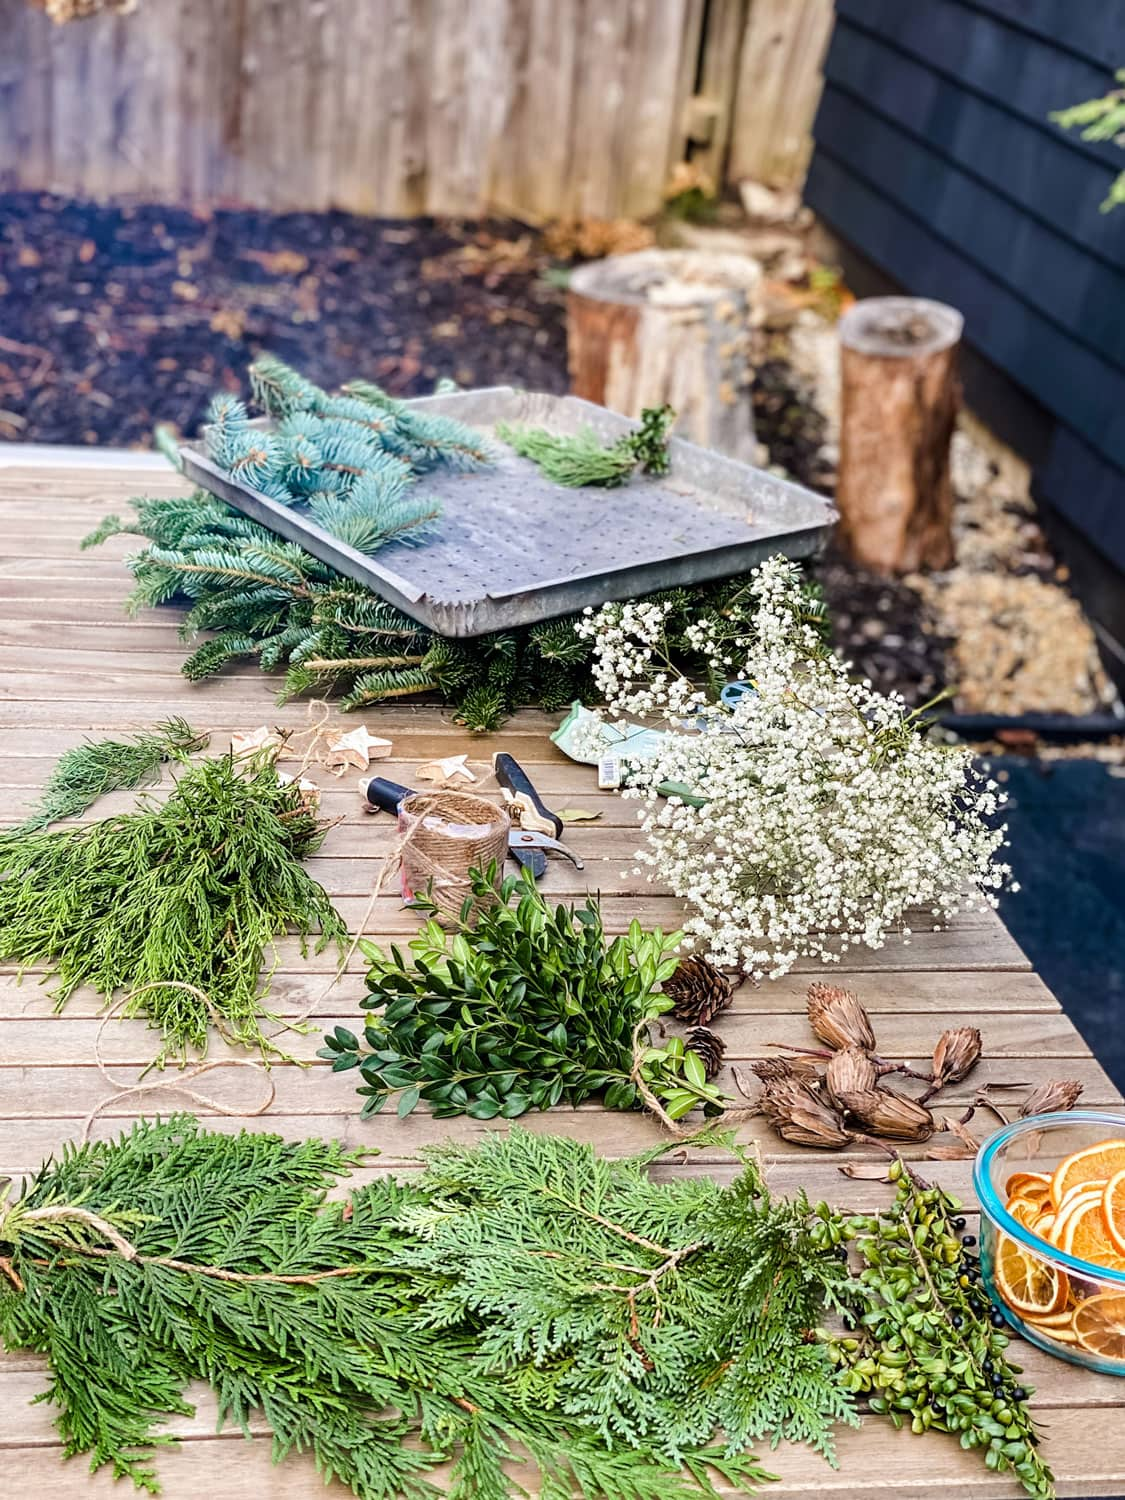 foraged materials on table